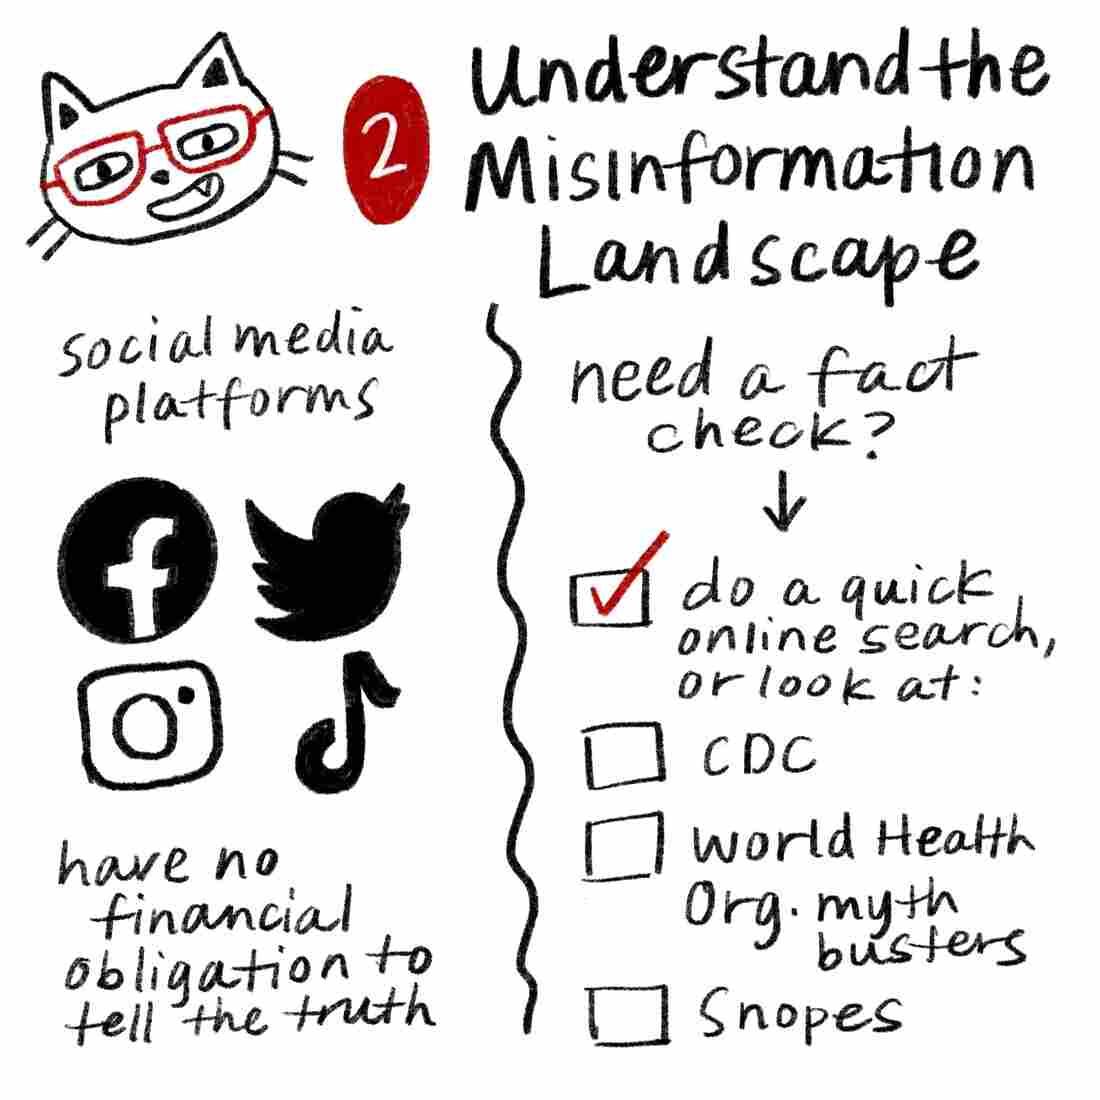 Tip 2: Understand the misinformation landscape. Social media platforms like Facebook, Twitter, Instagram and TikTok have no financial obligation to tell the truth. If you need to perform a fact check, do a quick online search, or look at the websites for the CDC or World Health Organization. Snopes and other fact-checking sites are also good resources.